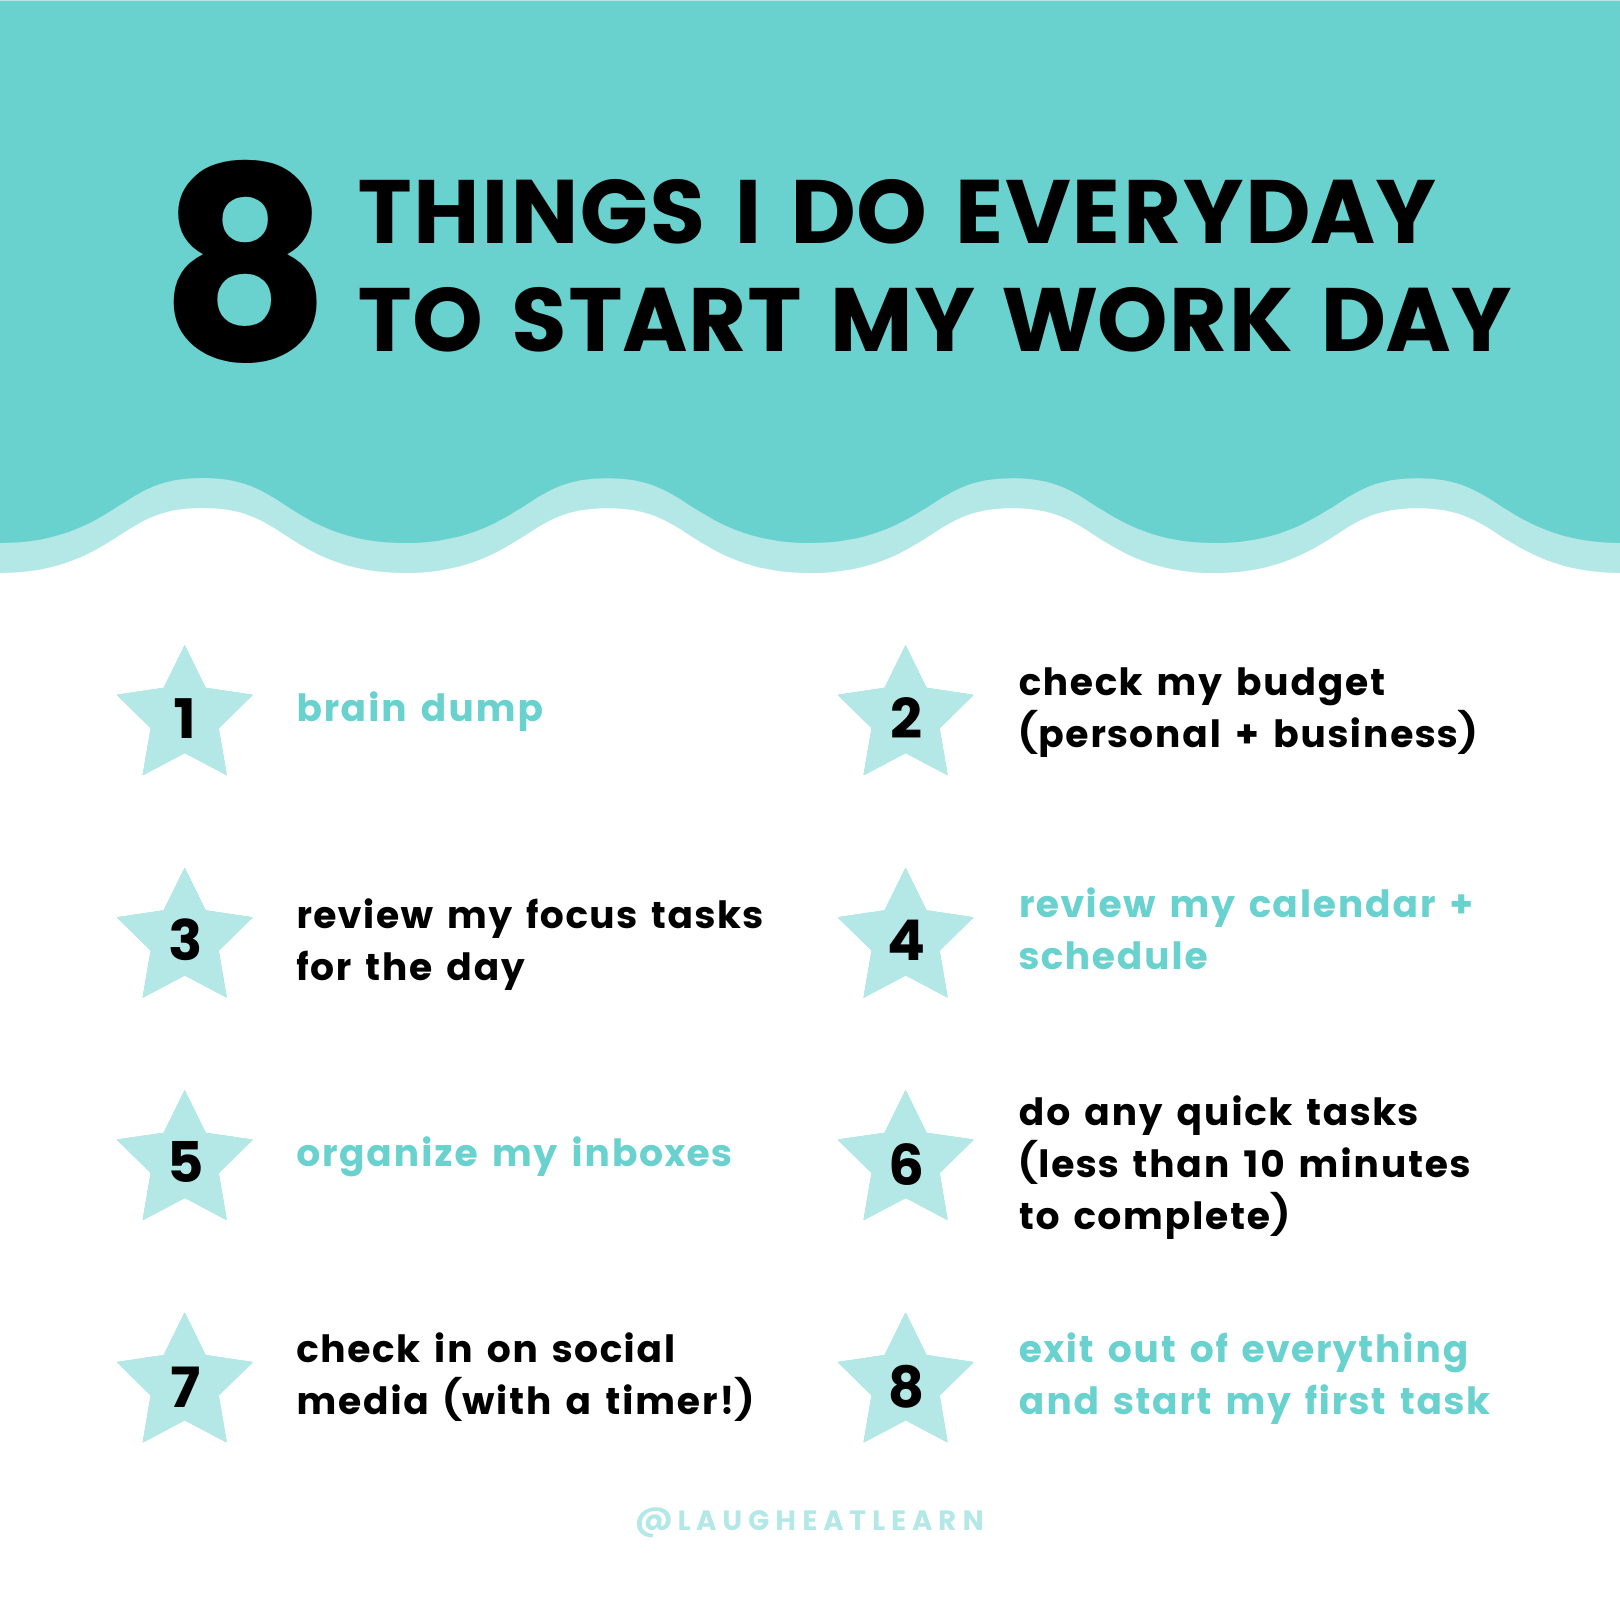 Over the years, I've worked really hard on creating a system or order of events that works best for to start my workday. This helps me setup for success and helps me ease into the day versus just jumping right in to tasks.